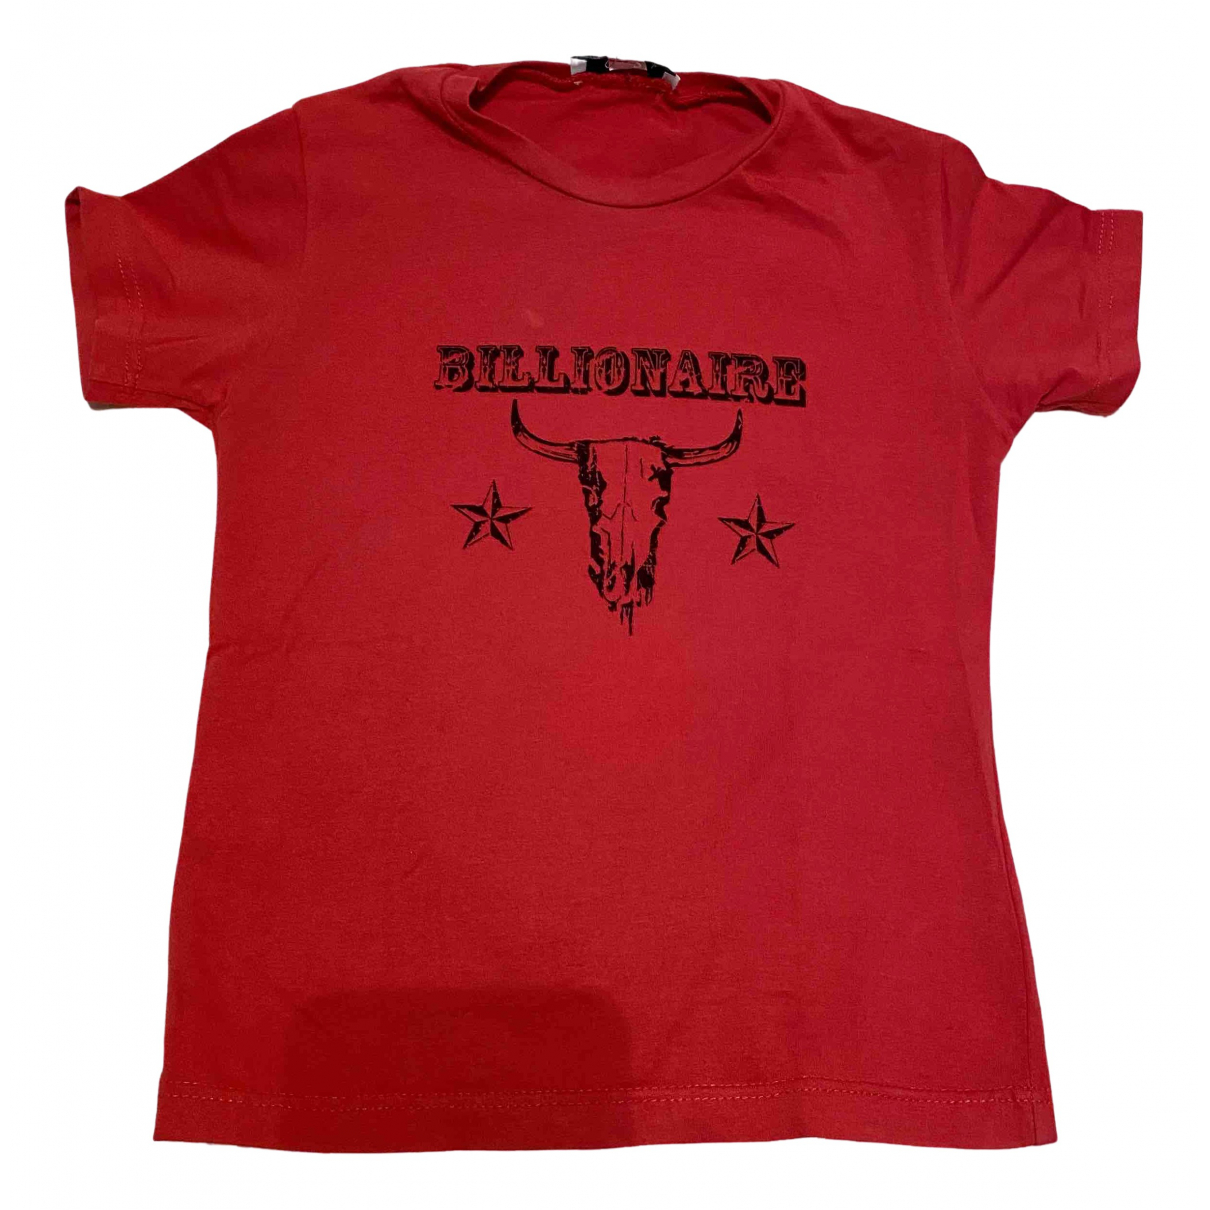 Billionaire Boys Club \N Red Cotton  top for Kids 5 years - up to 108cm FR